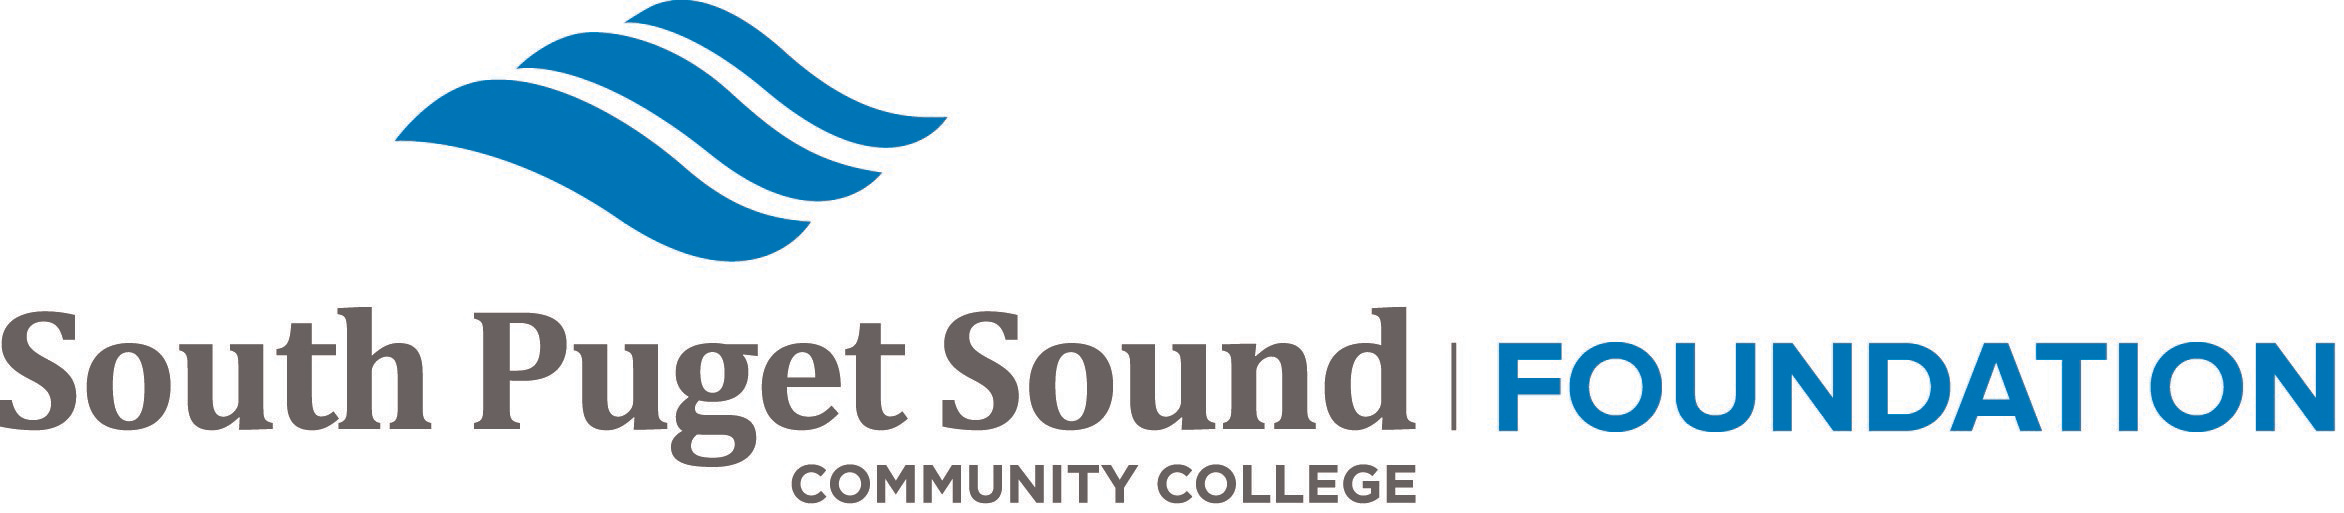 South Puget Sound Community College Foundation